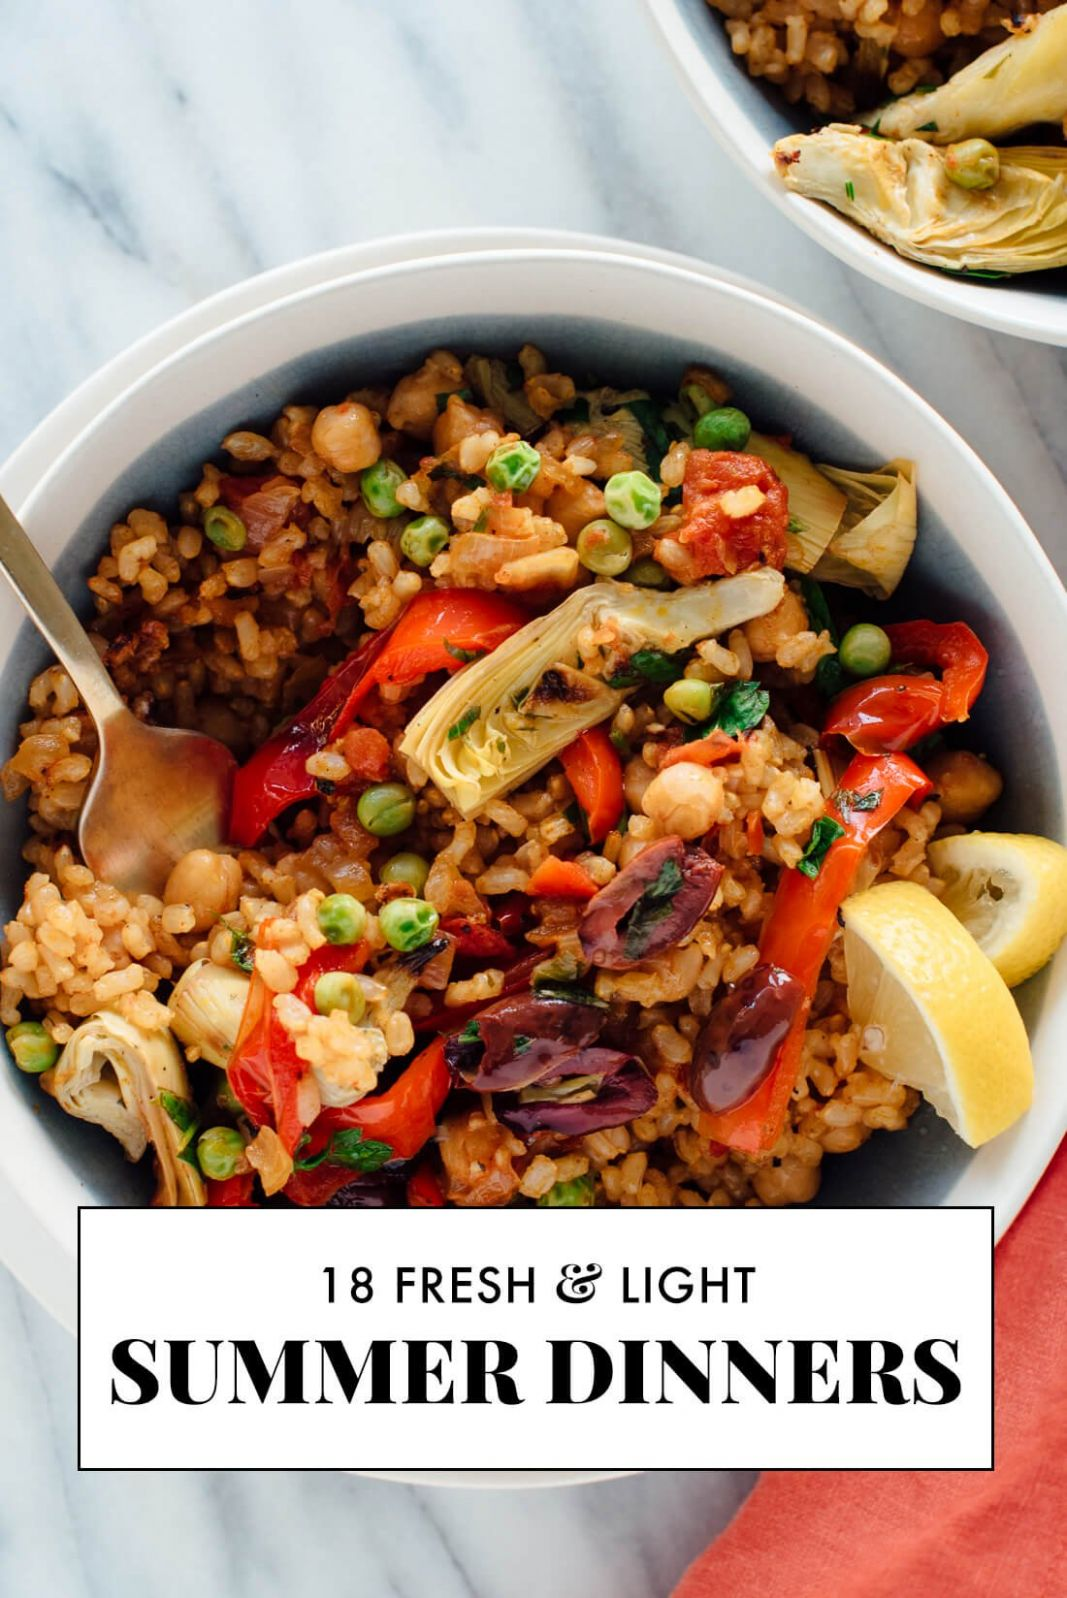 11 Light Summer Dinner Recipes - Cookie and Kate - Summer Recipes Healthy Easy